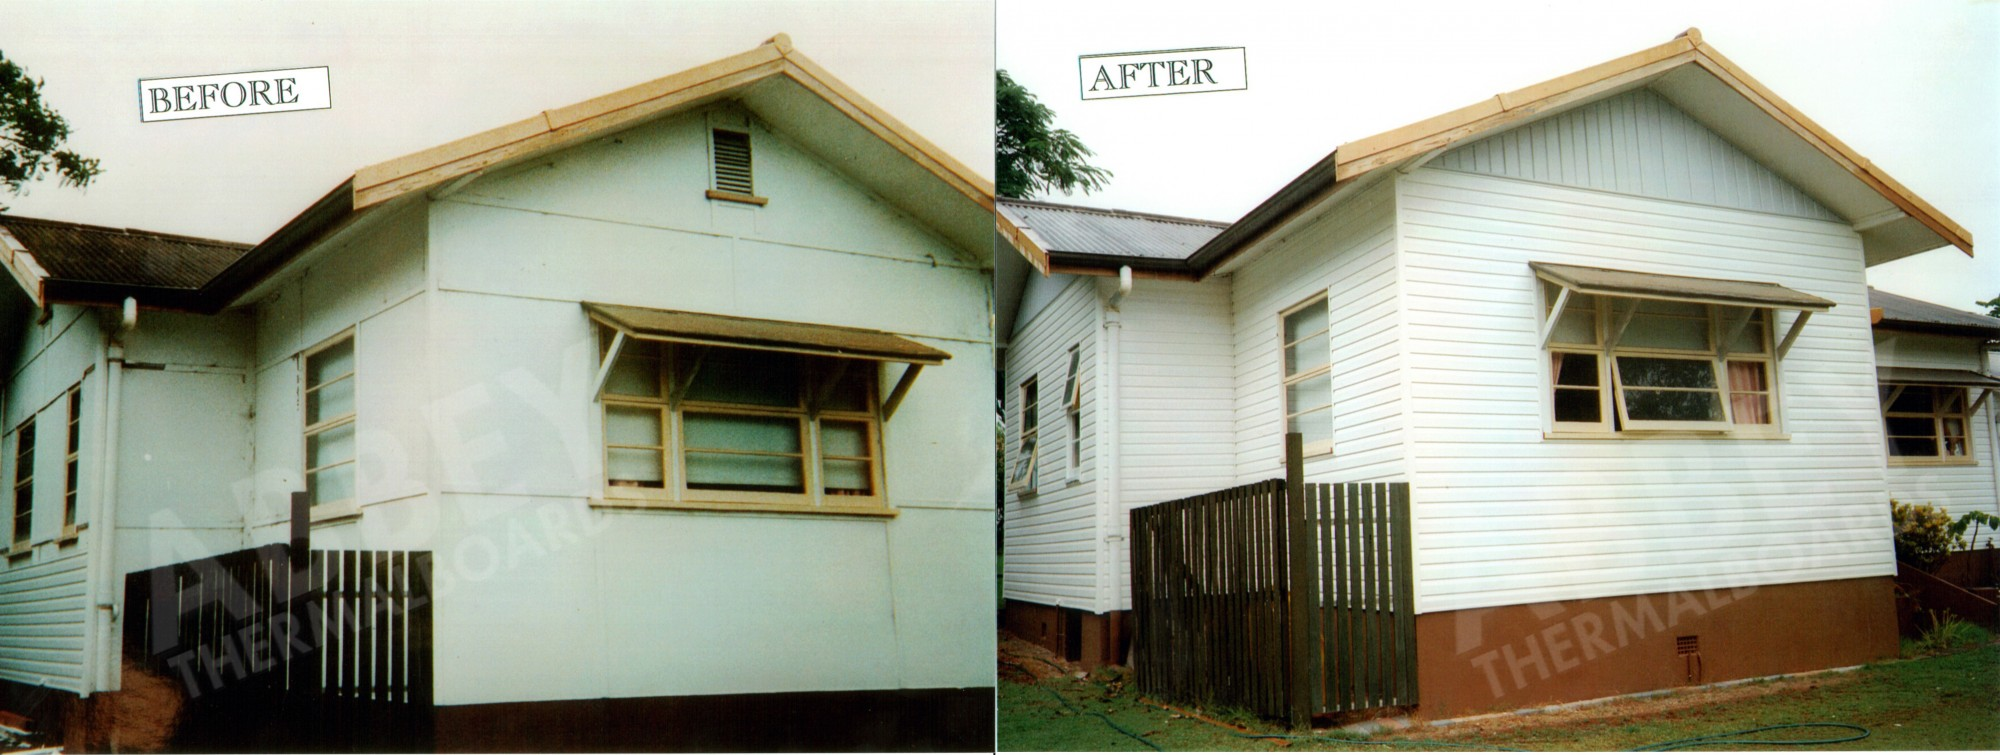 Before and after shot of house cladding completed in Cairns by Abbey.